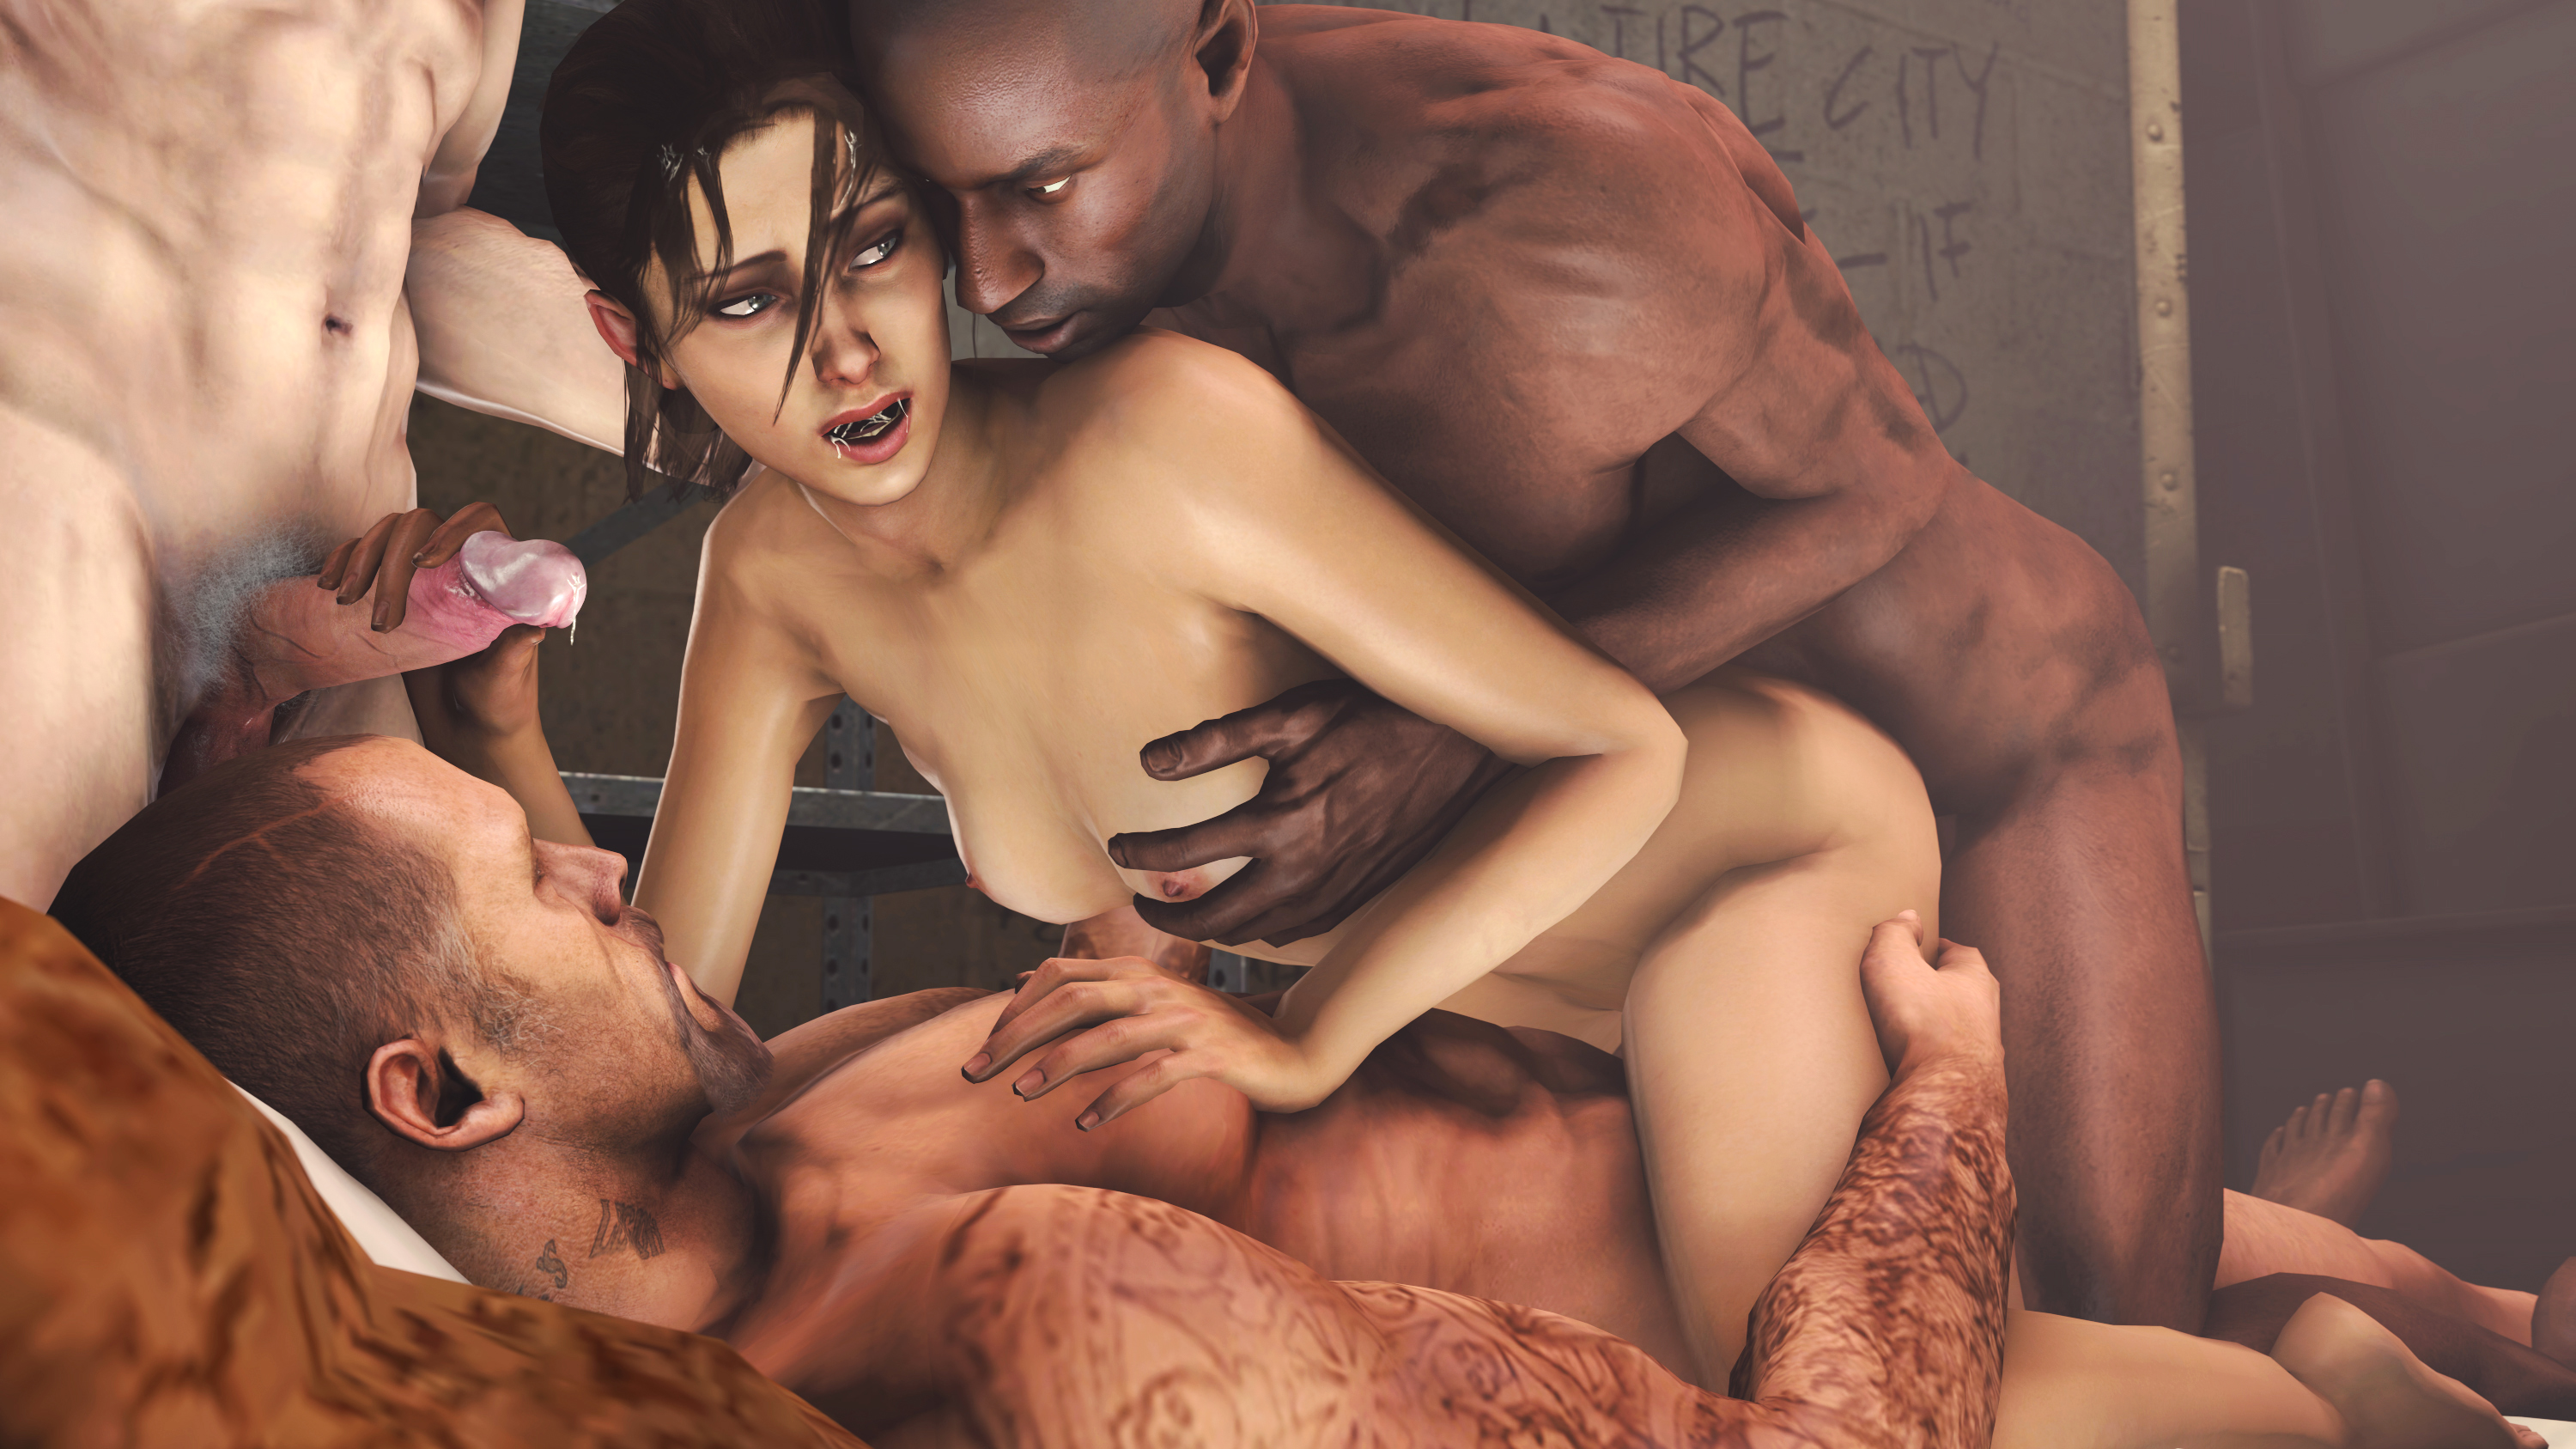 Left for dead naked erotic image